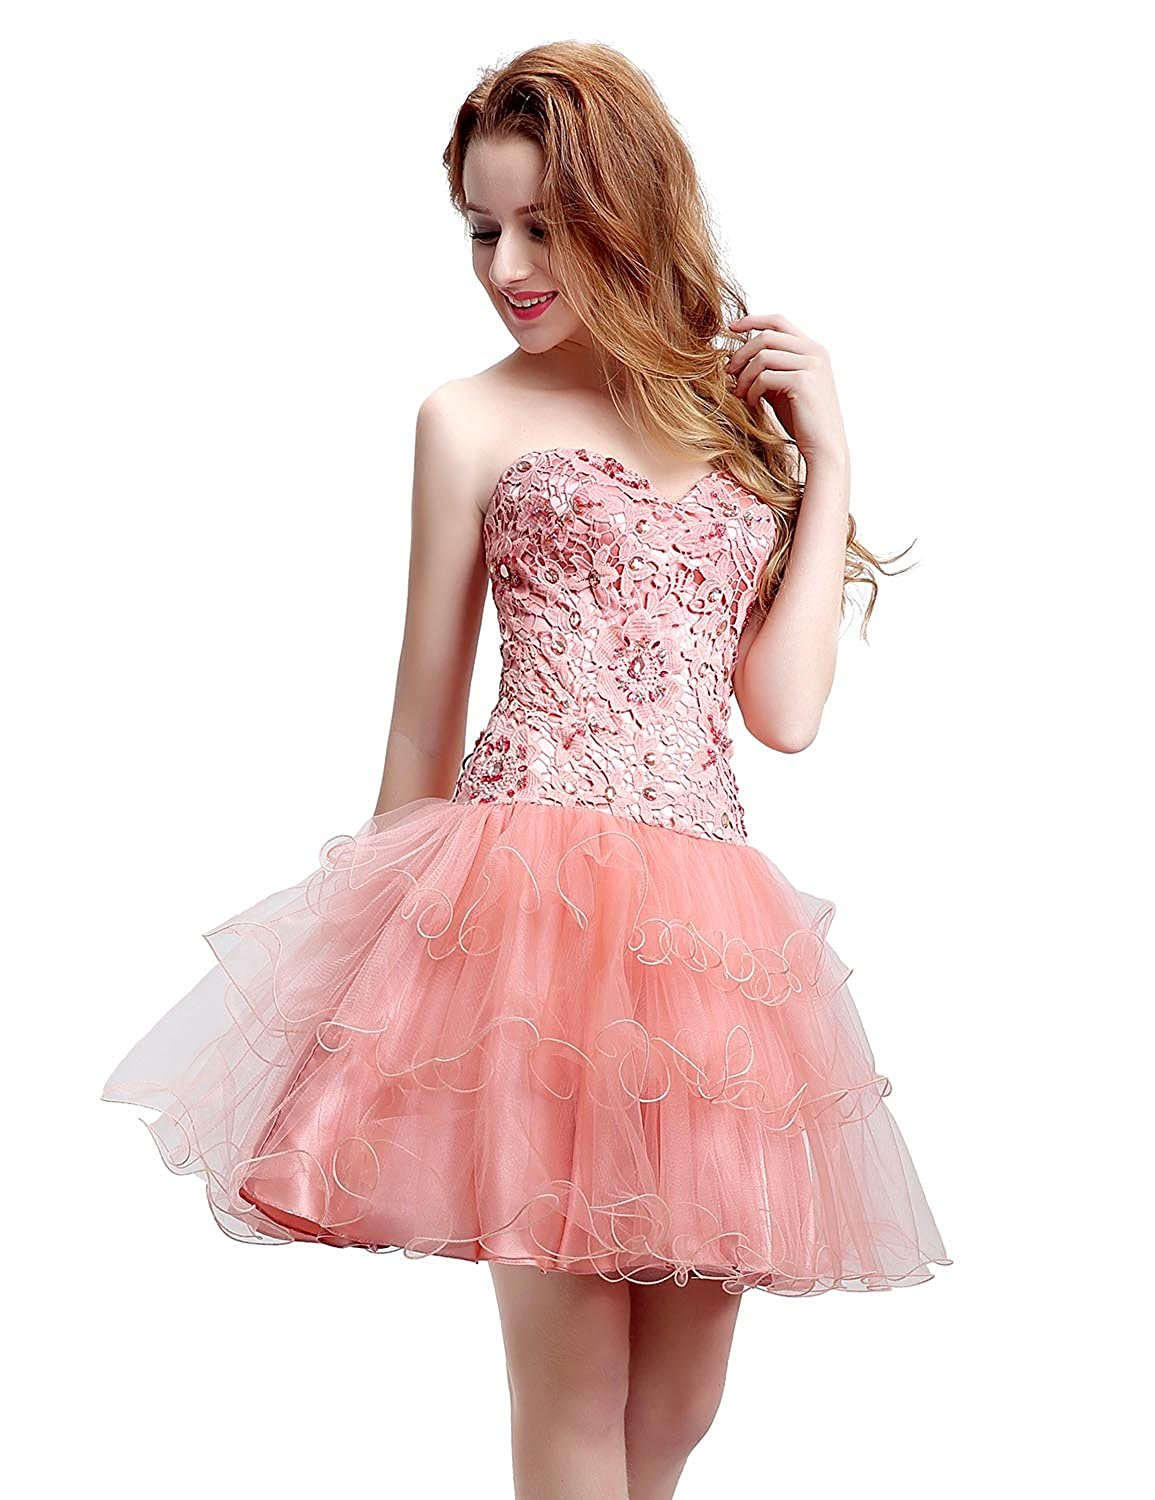 Sarahbridal Sweetheart Short Prom Gown Girls Mini Homecoming Dress Maxied Styles